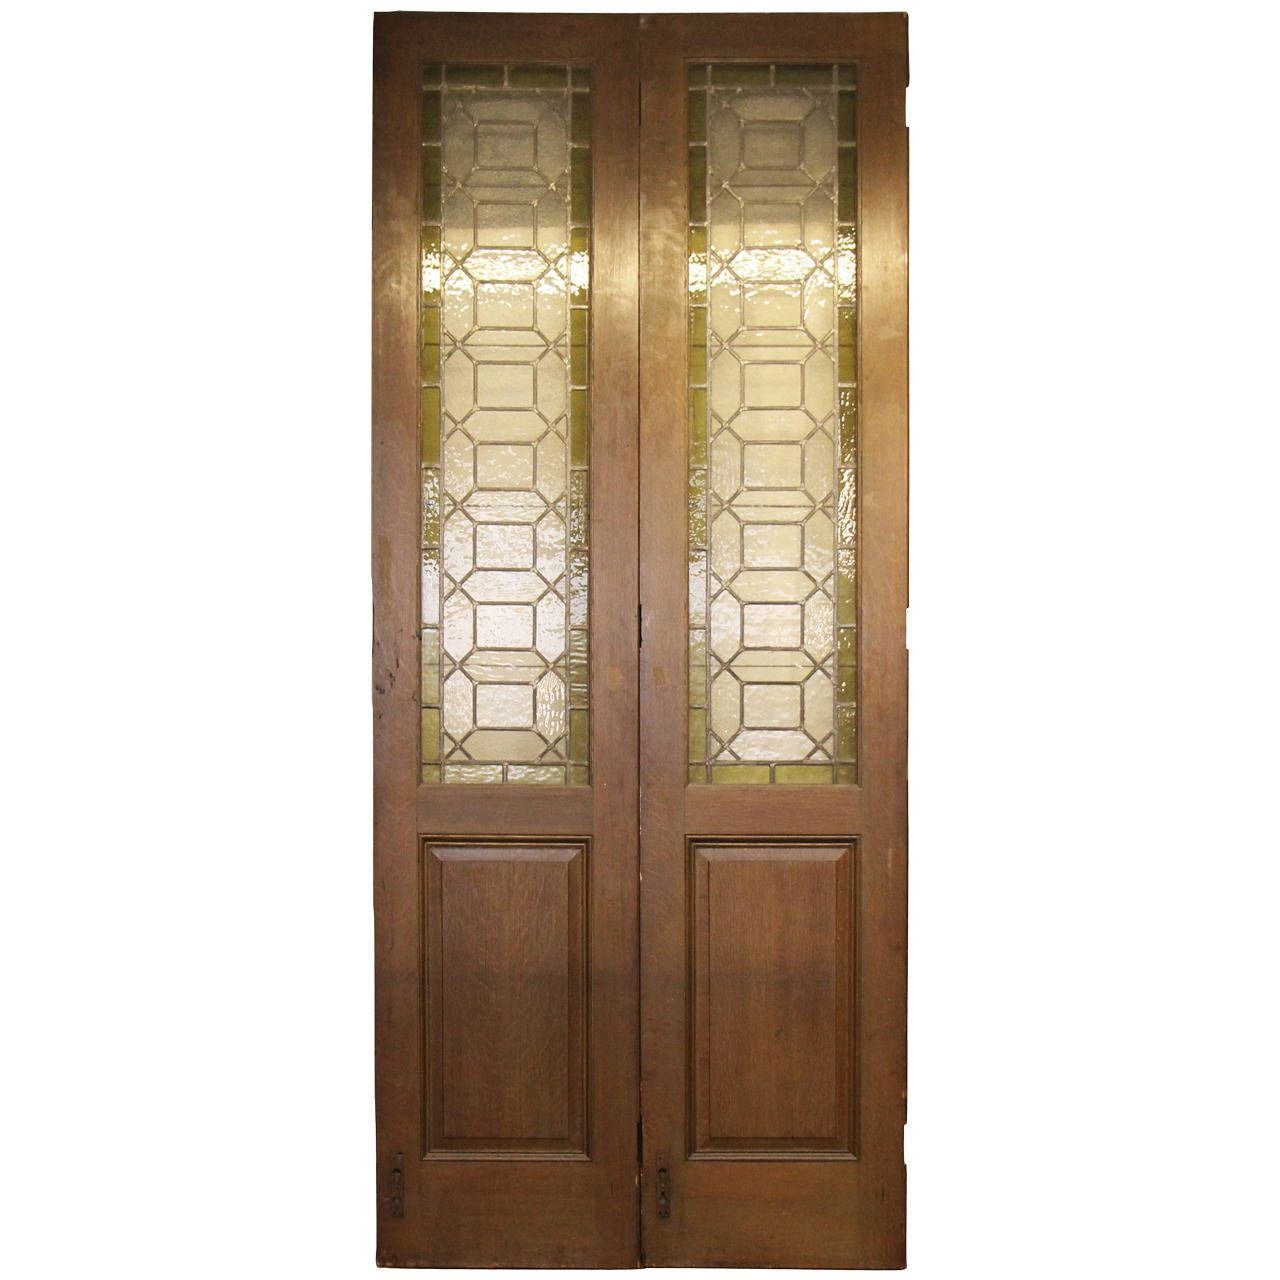 Stained glass pocket door google search dining room stained glass pocket door google search eventelaan Gallery